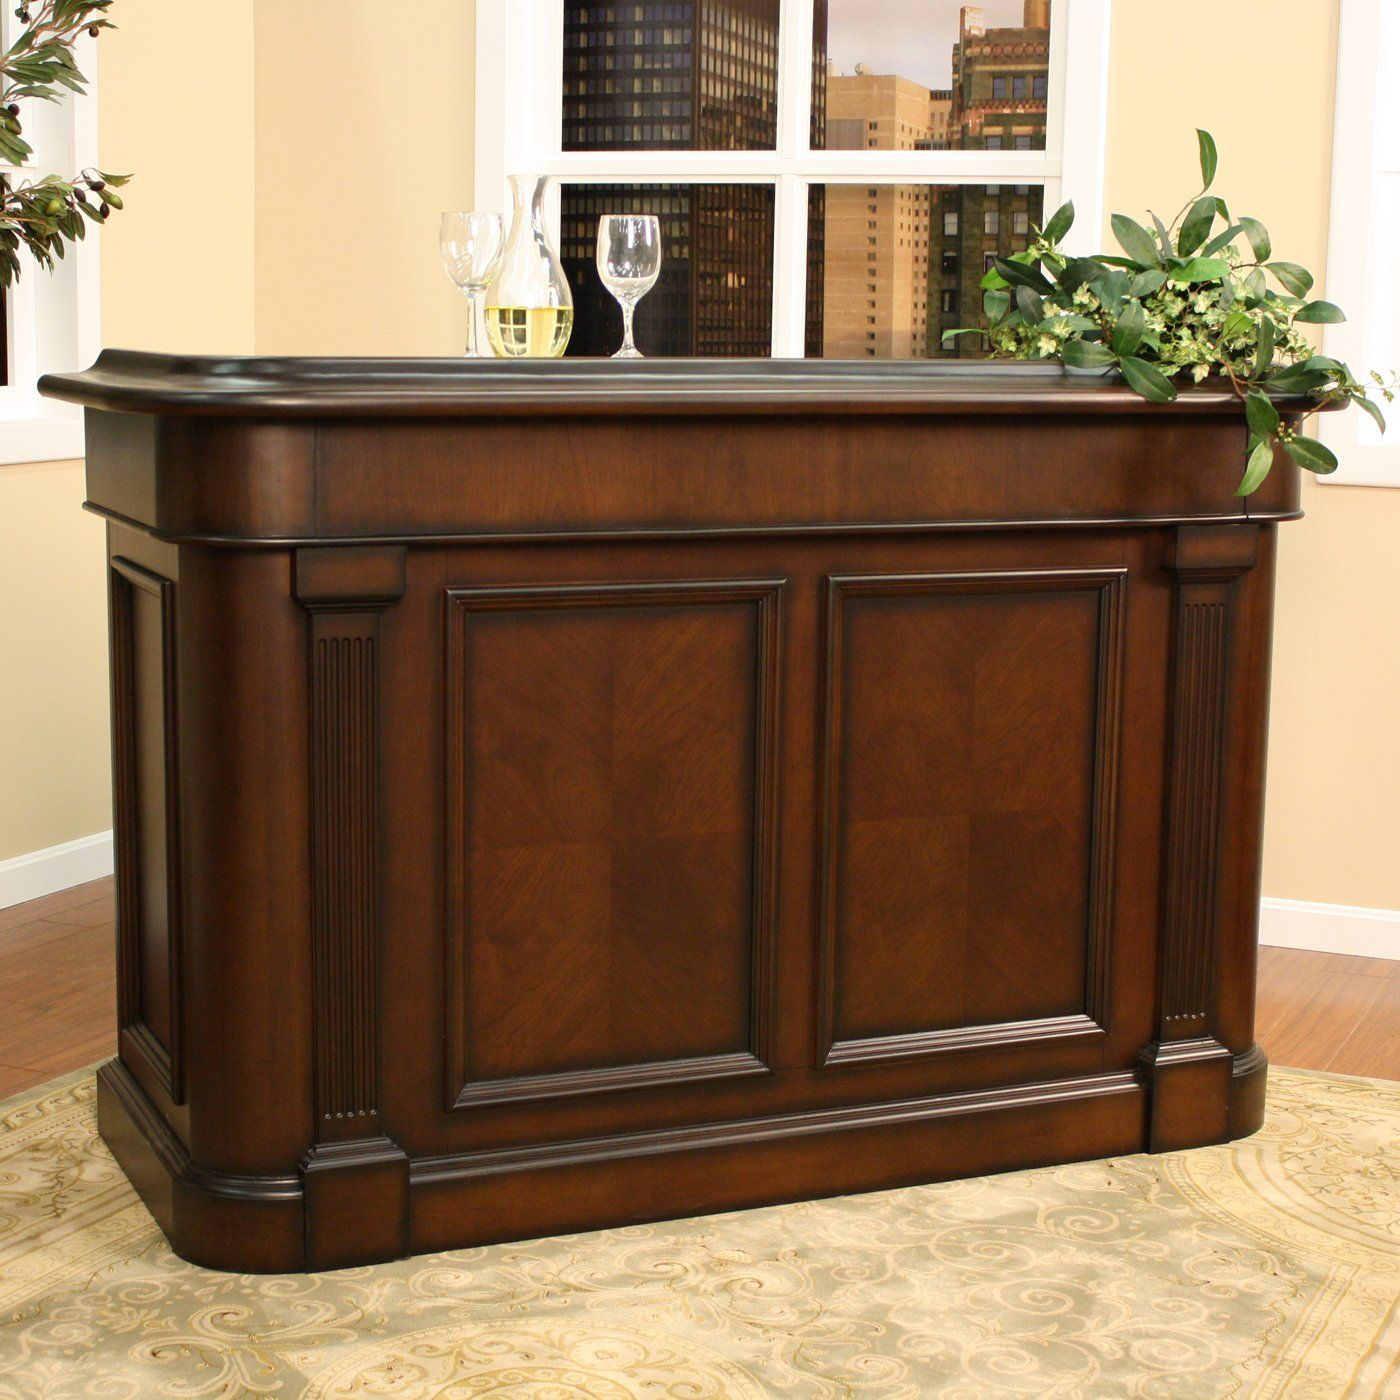 This Beautiful Gilliam Home Bar Is Not Only A Functional